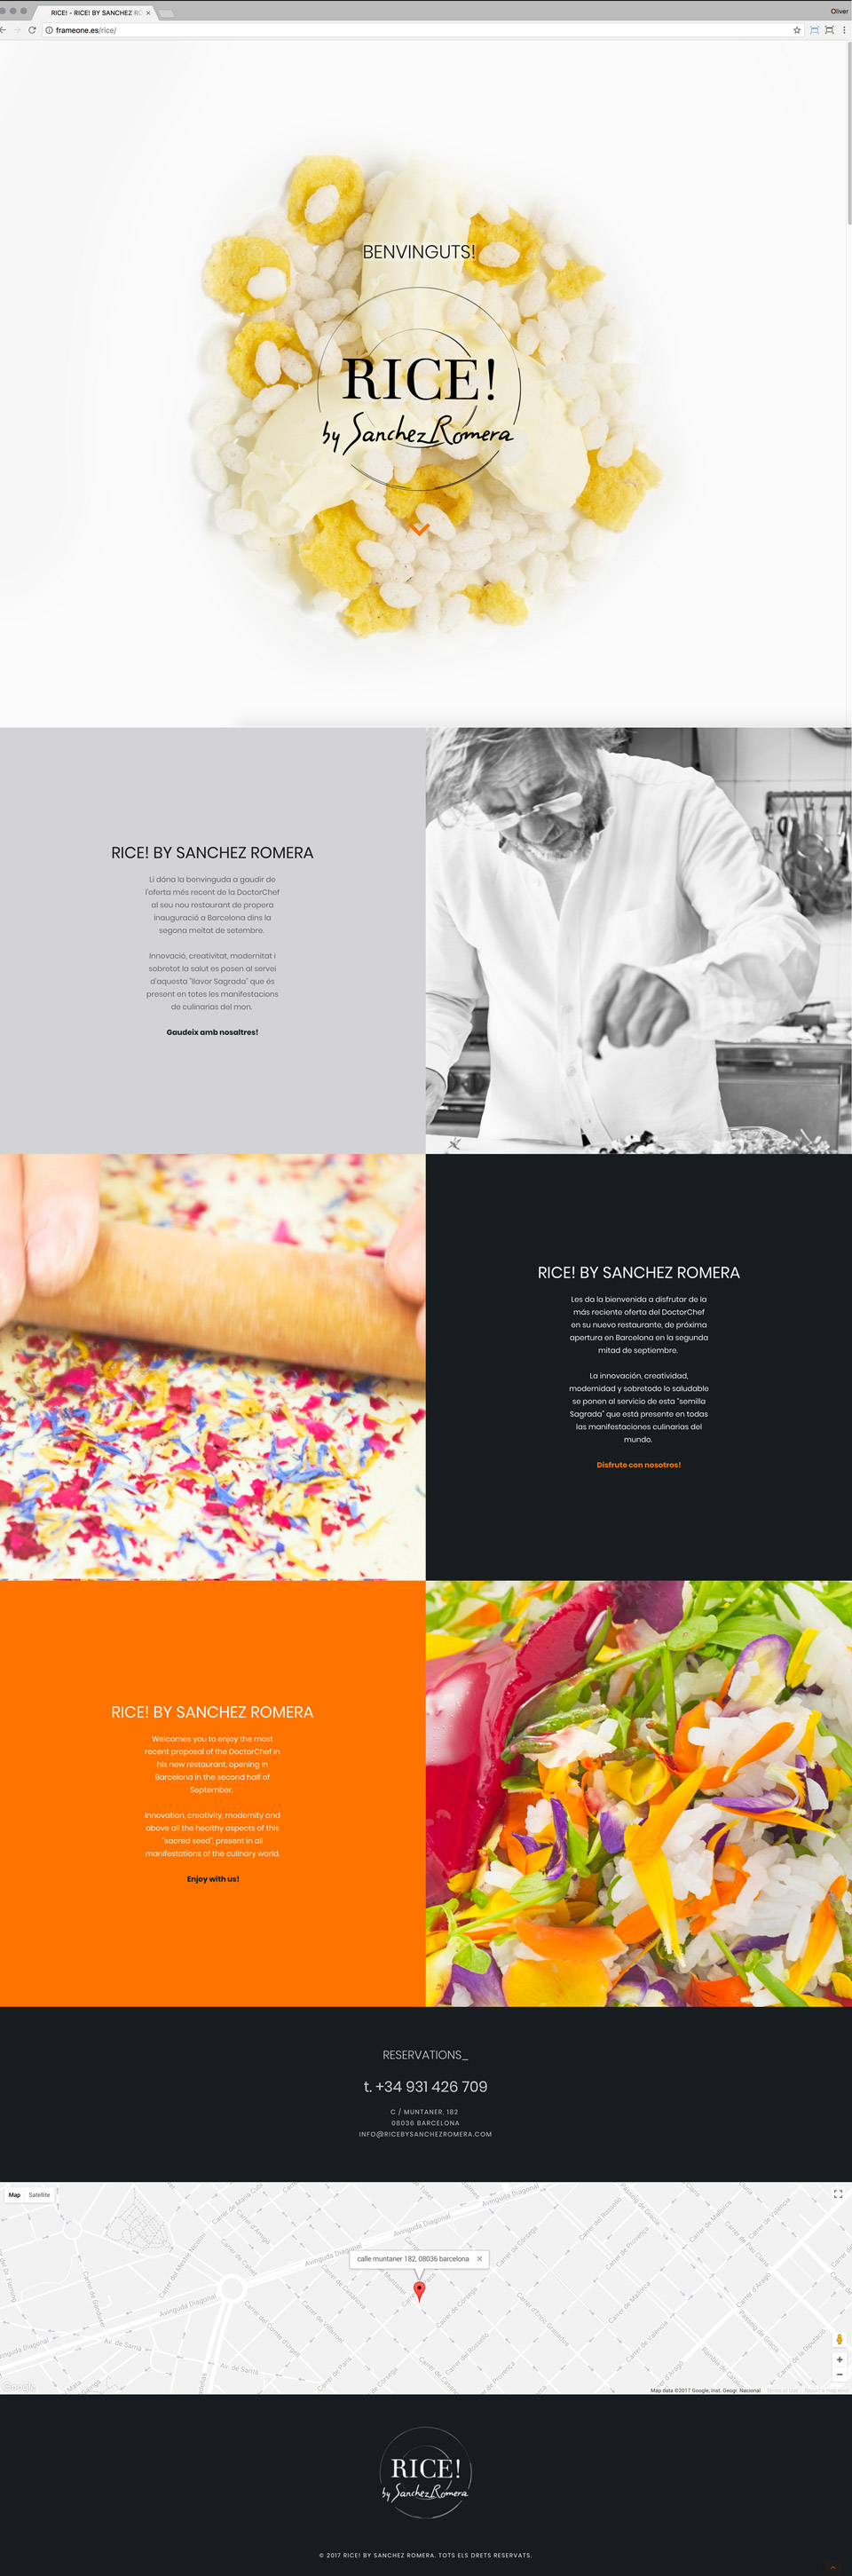 frameone-media-design-web-rice-by-sanchez-romera